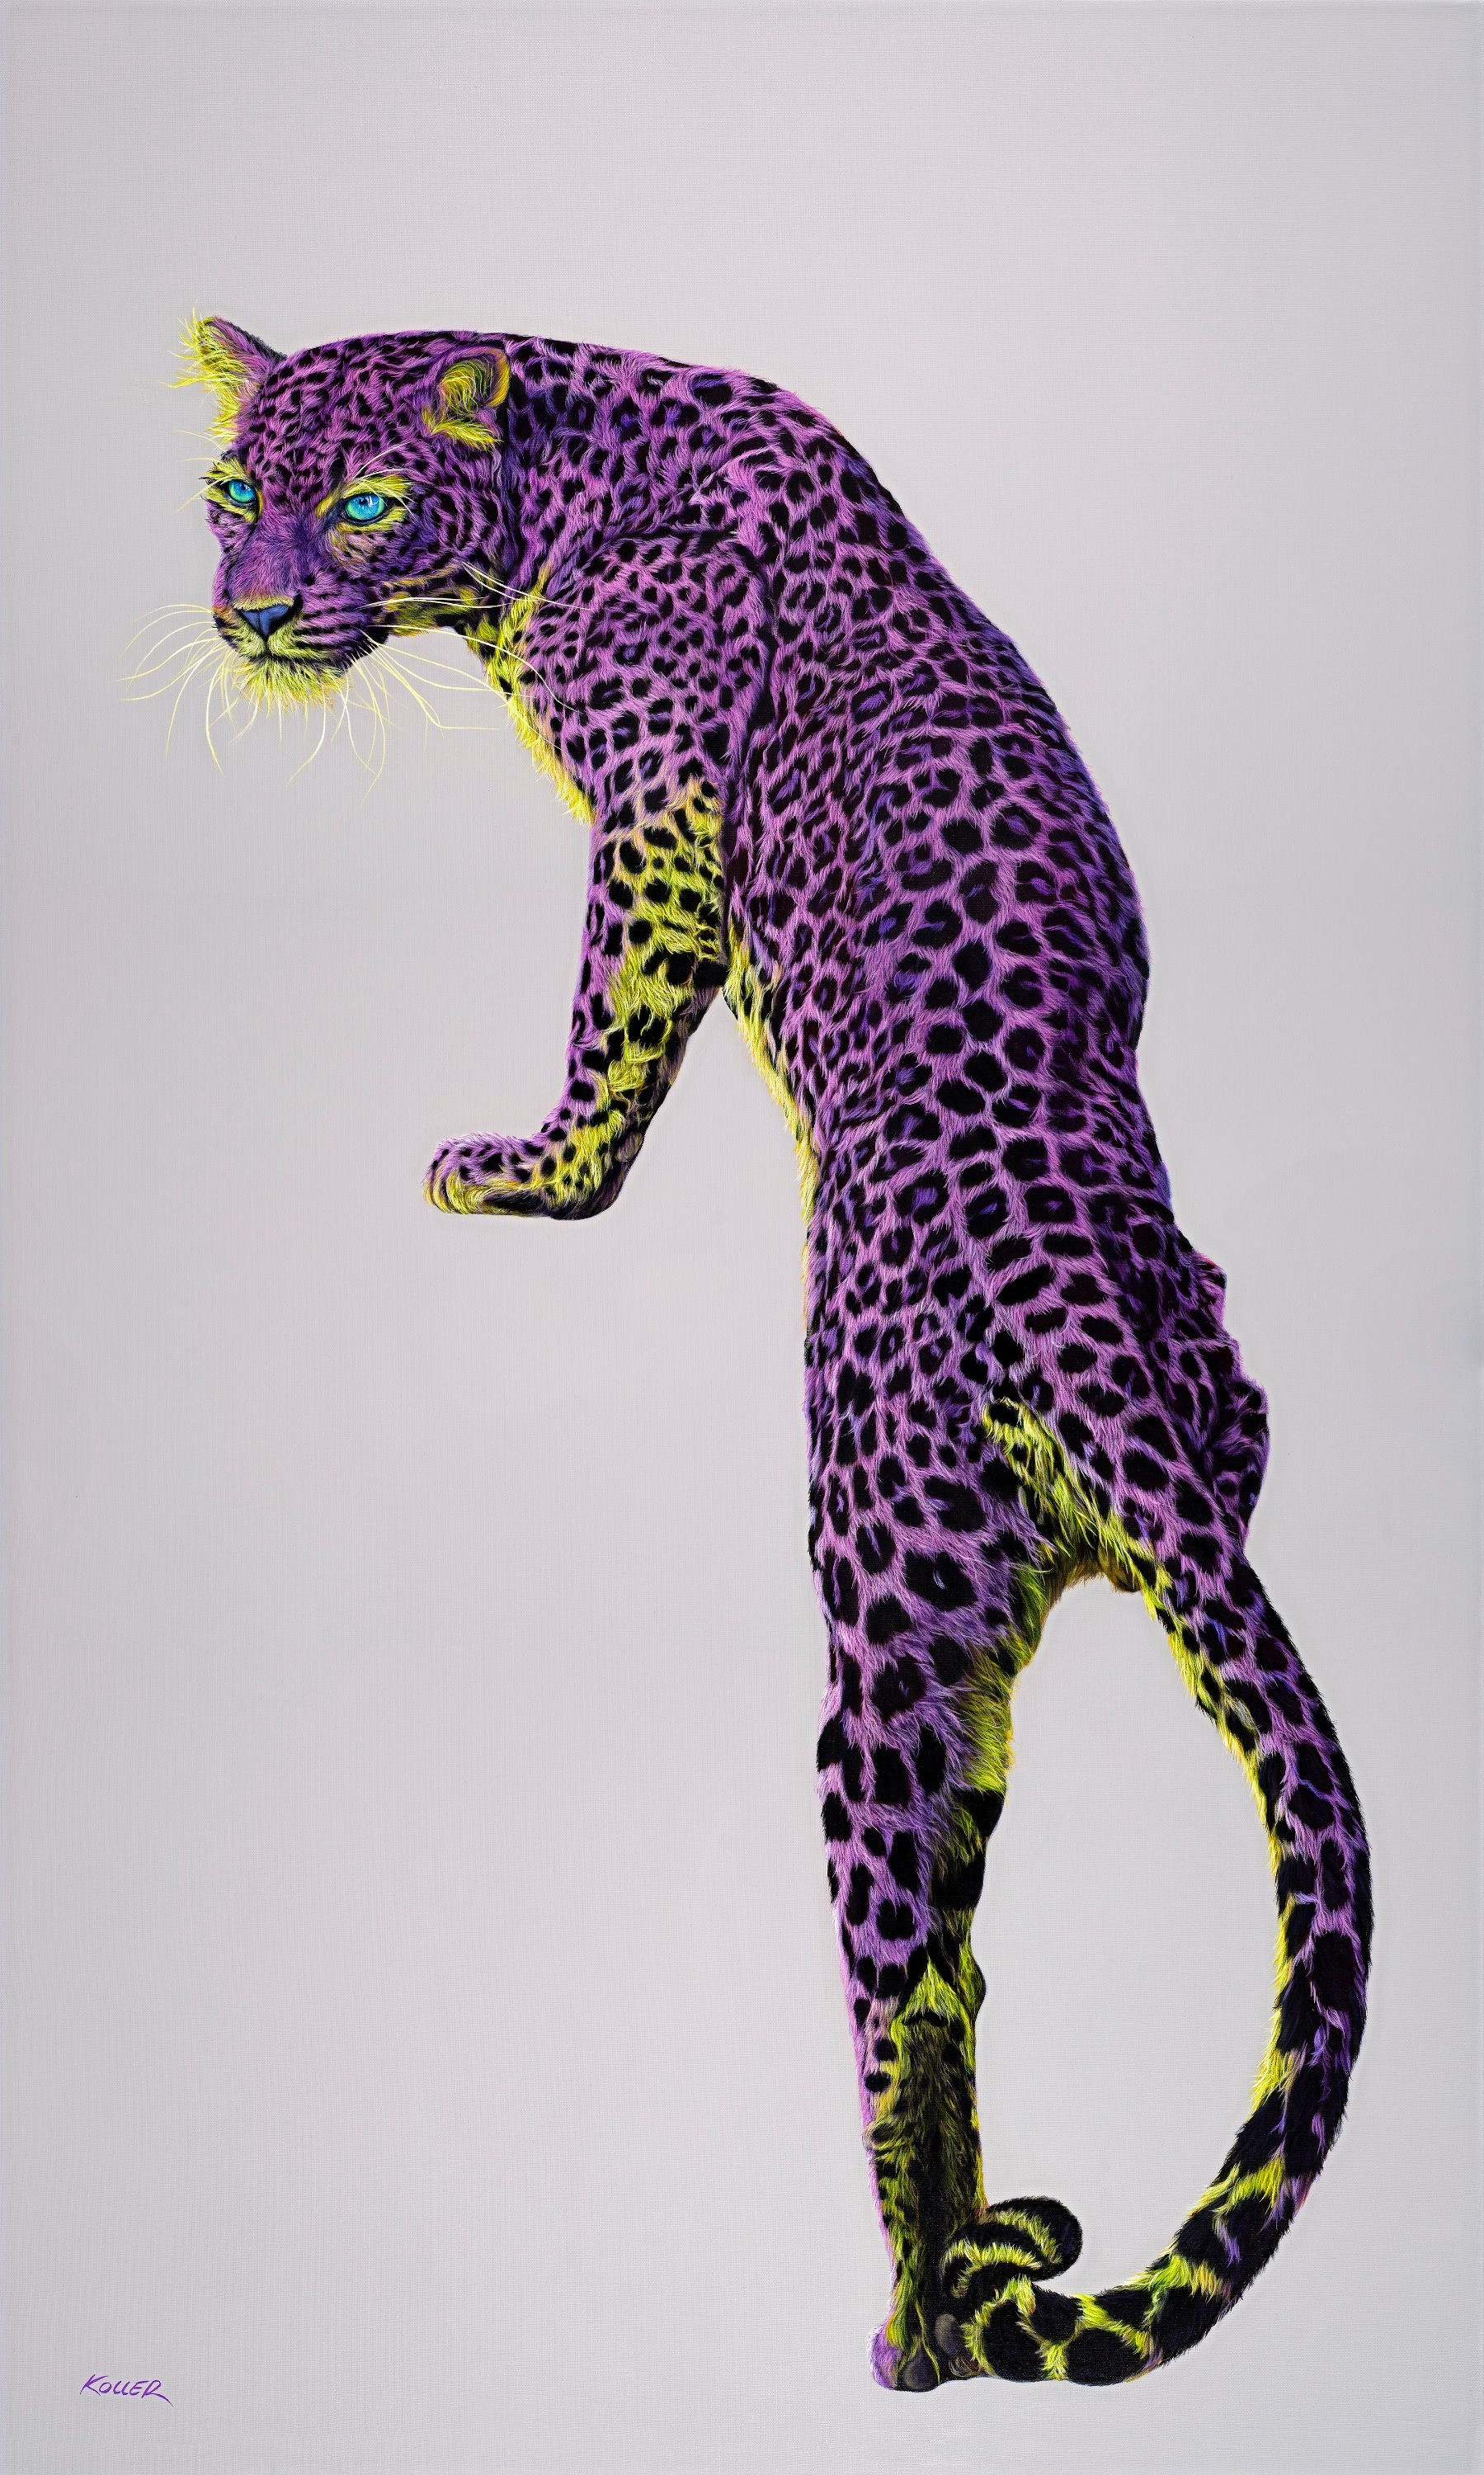 LEOPARD IN VIOLET & YELLOW, 2020